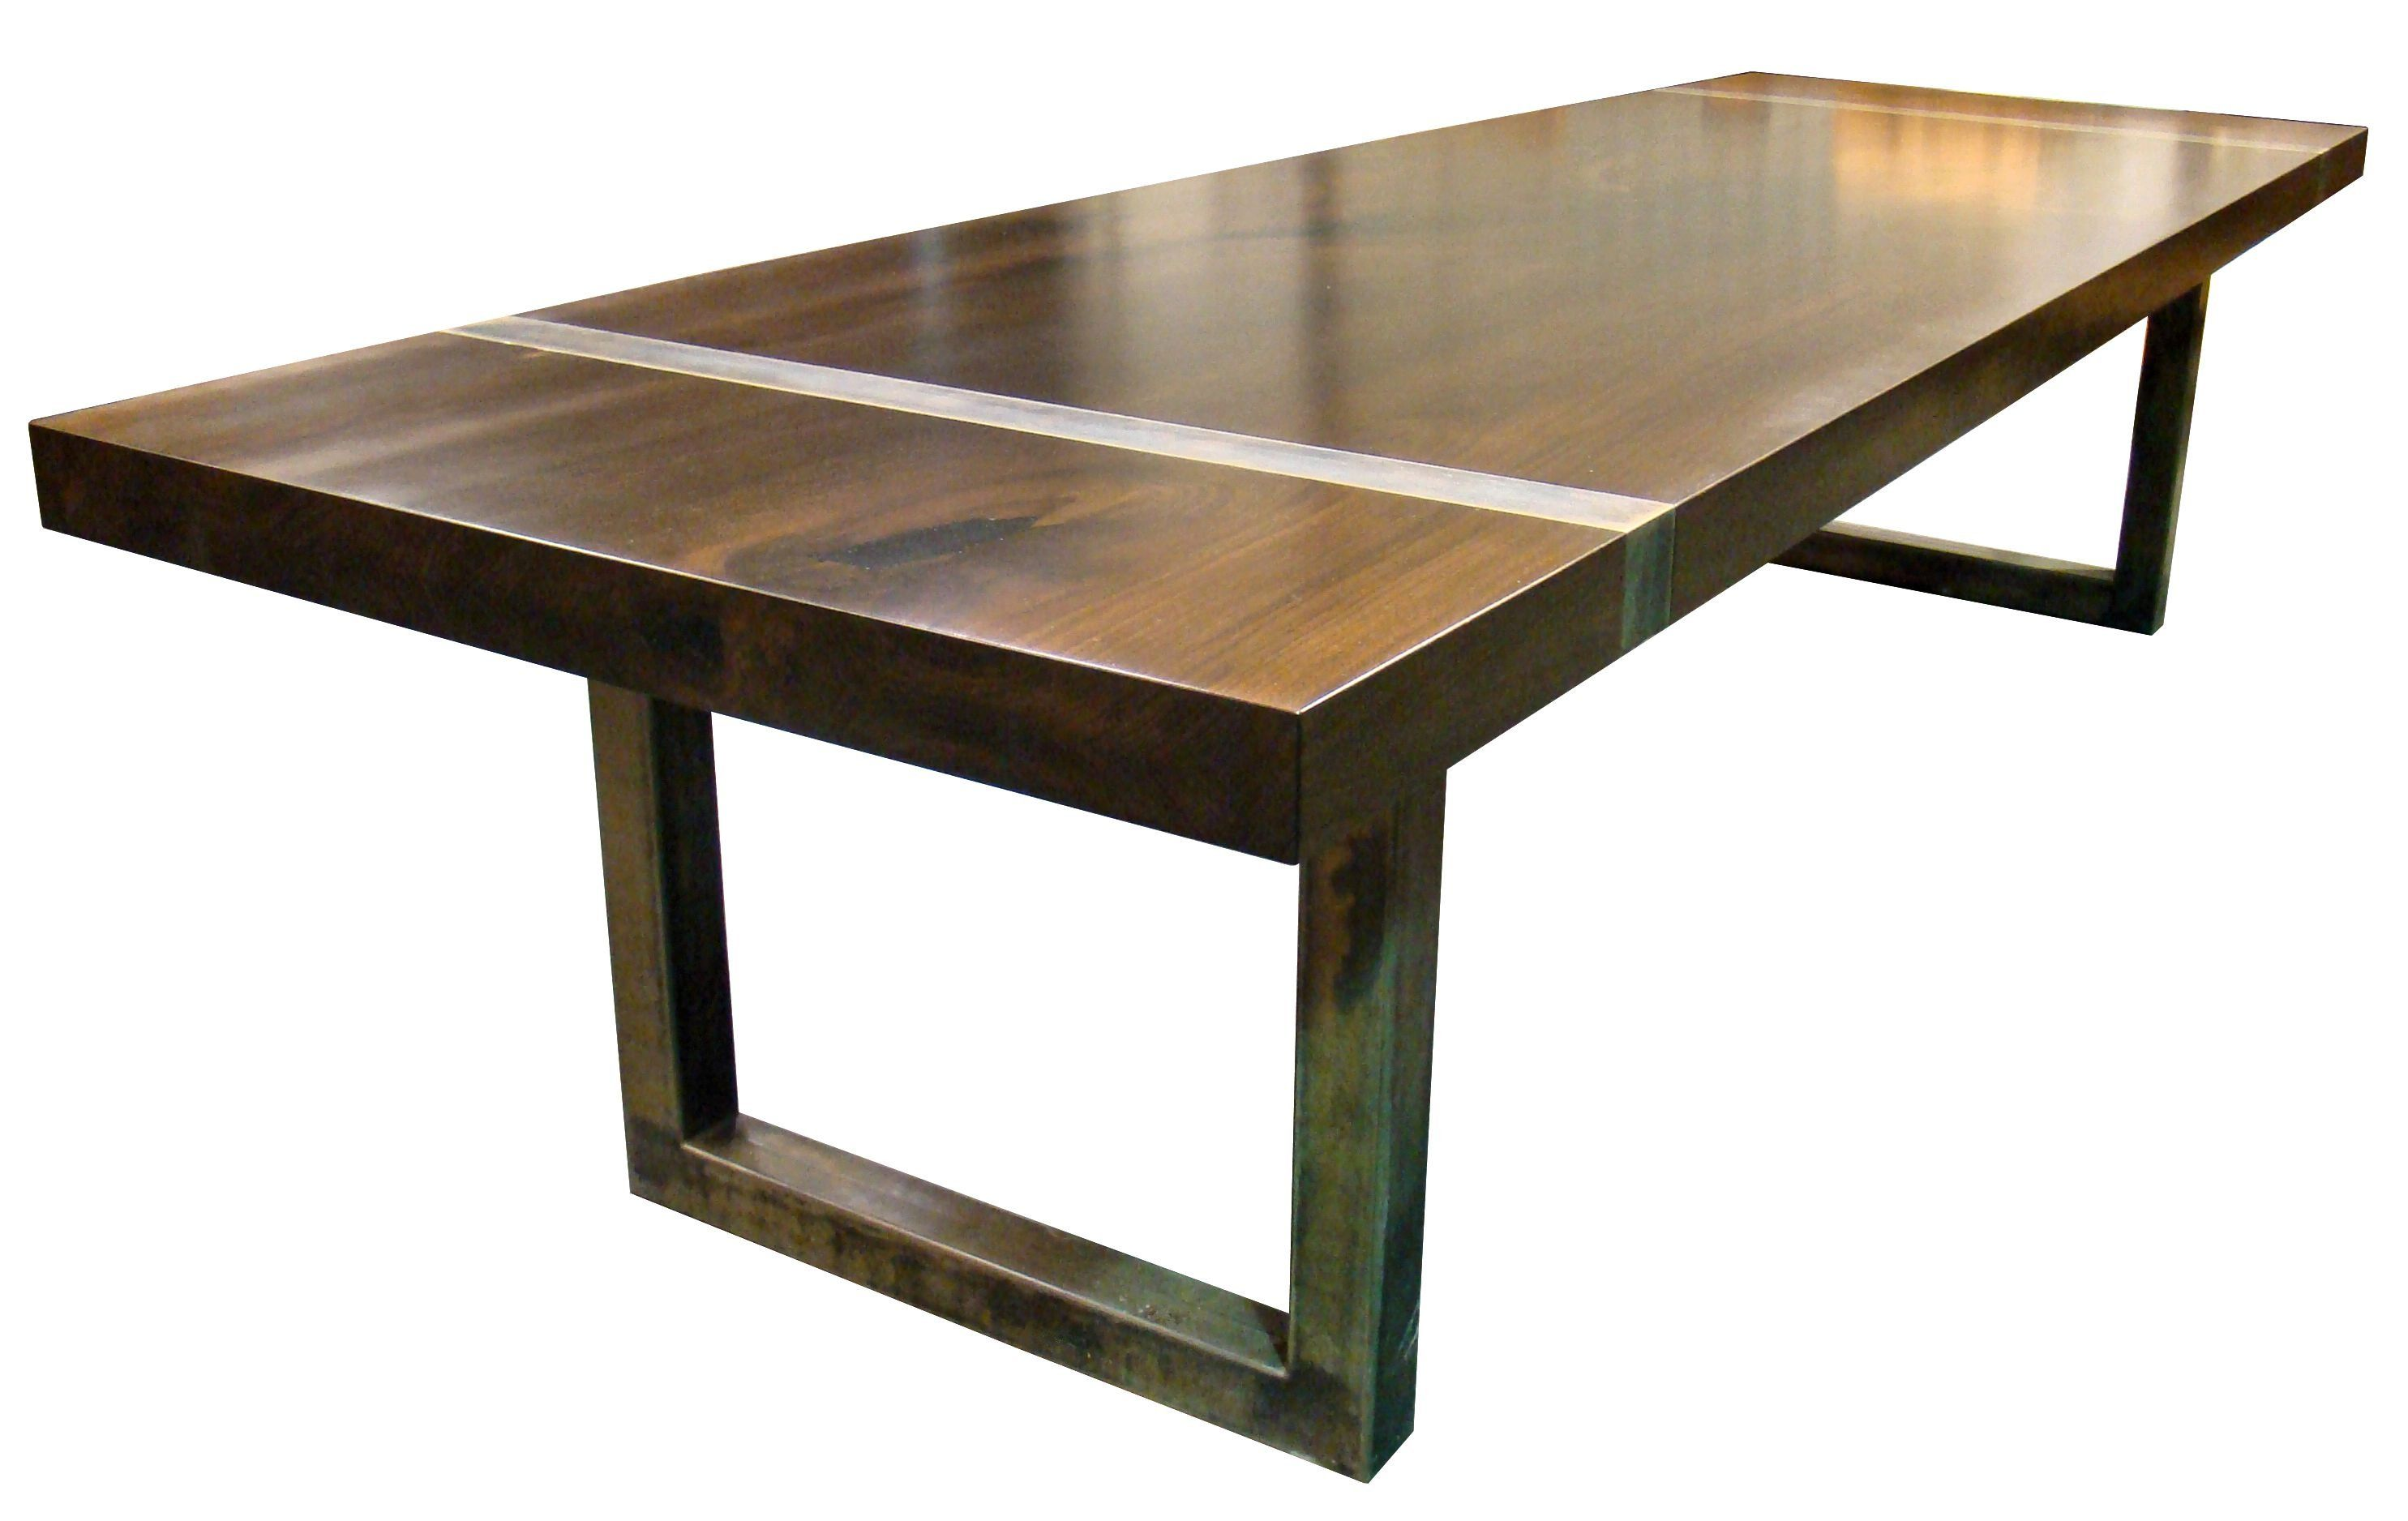 Devos custom woodworking custom wood tables with metal bases for Pietement table metal